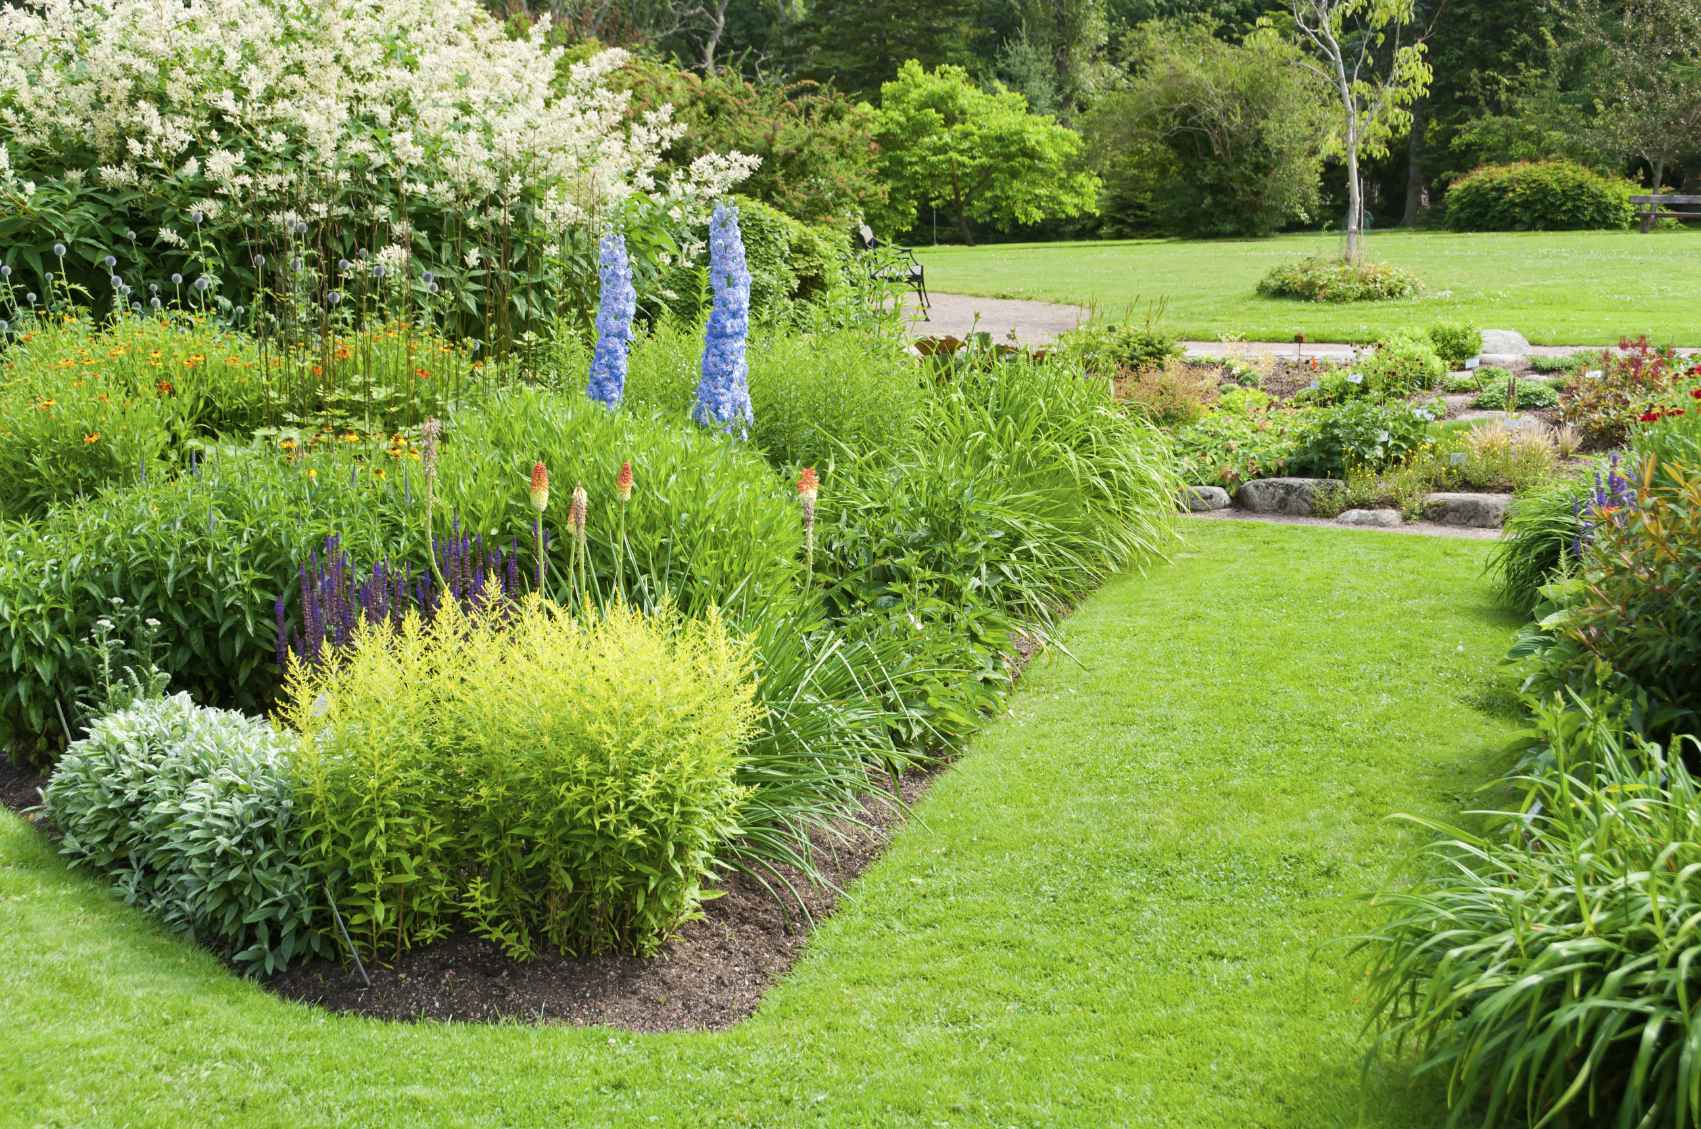 Landscaping and yard services sitka landscaping nanaimo for Garden landscaping services